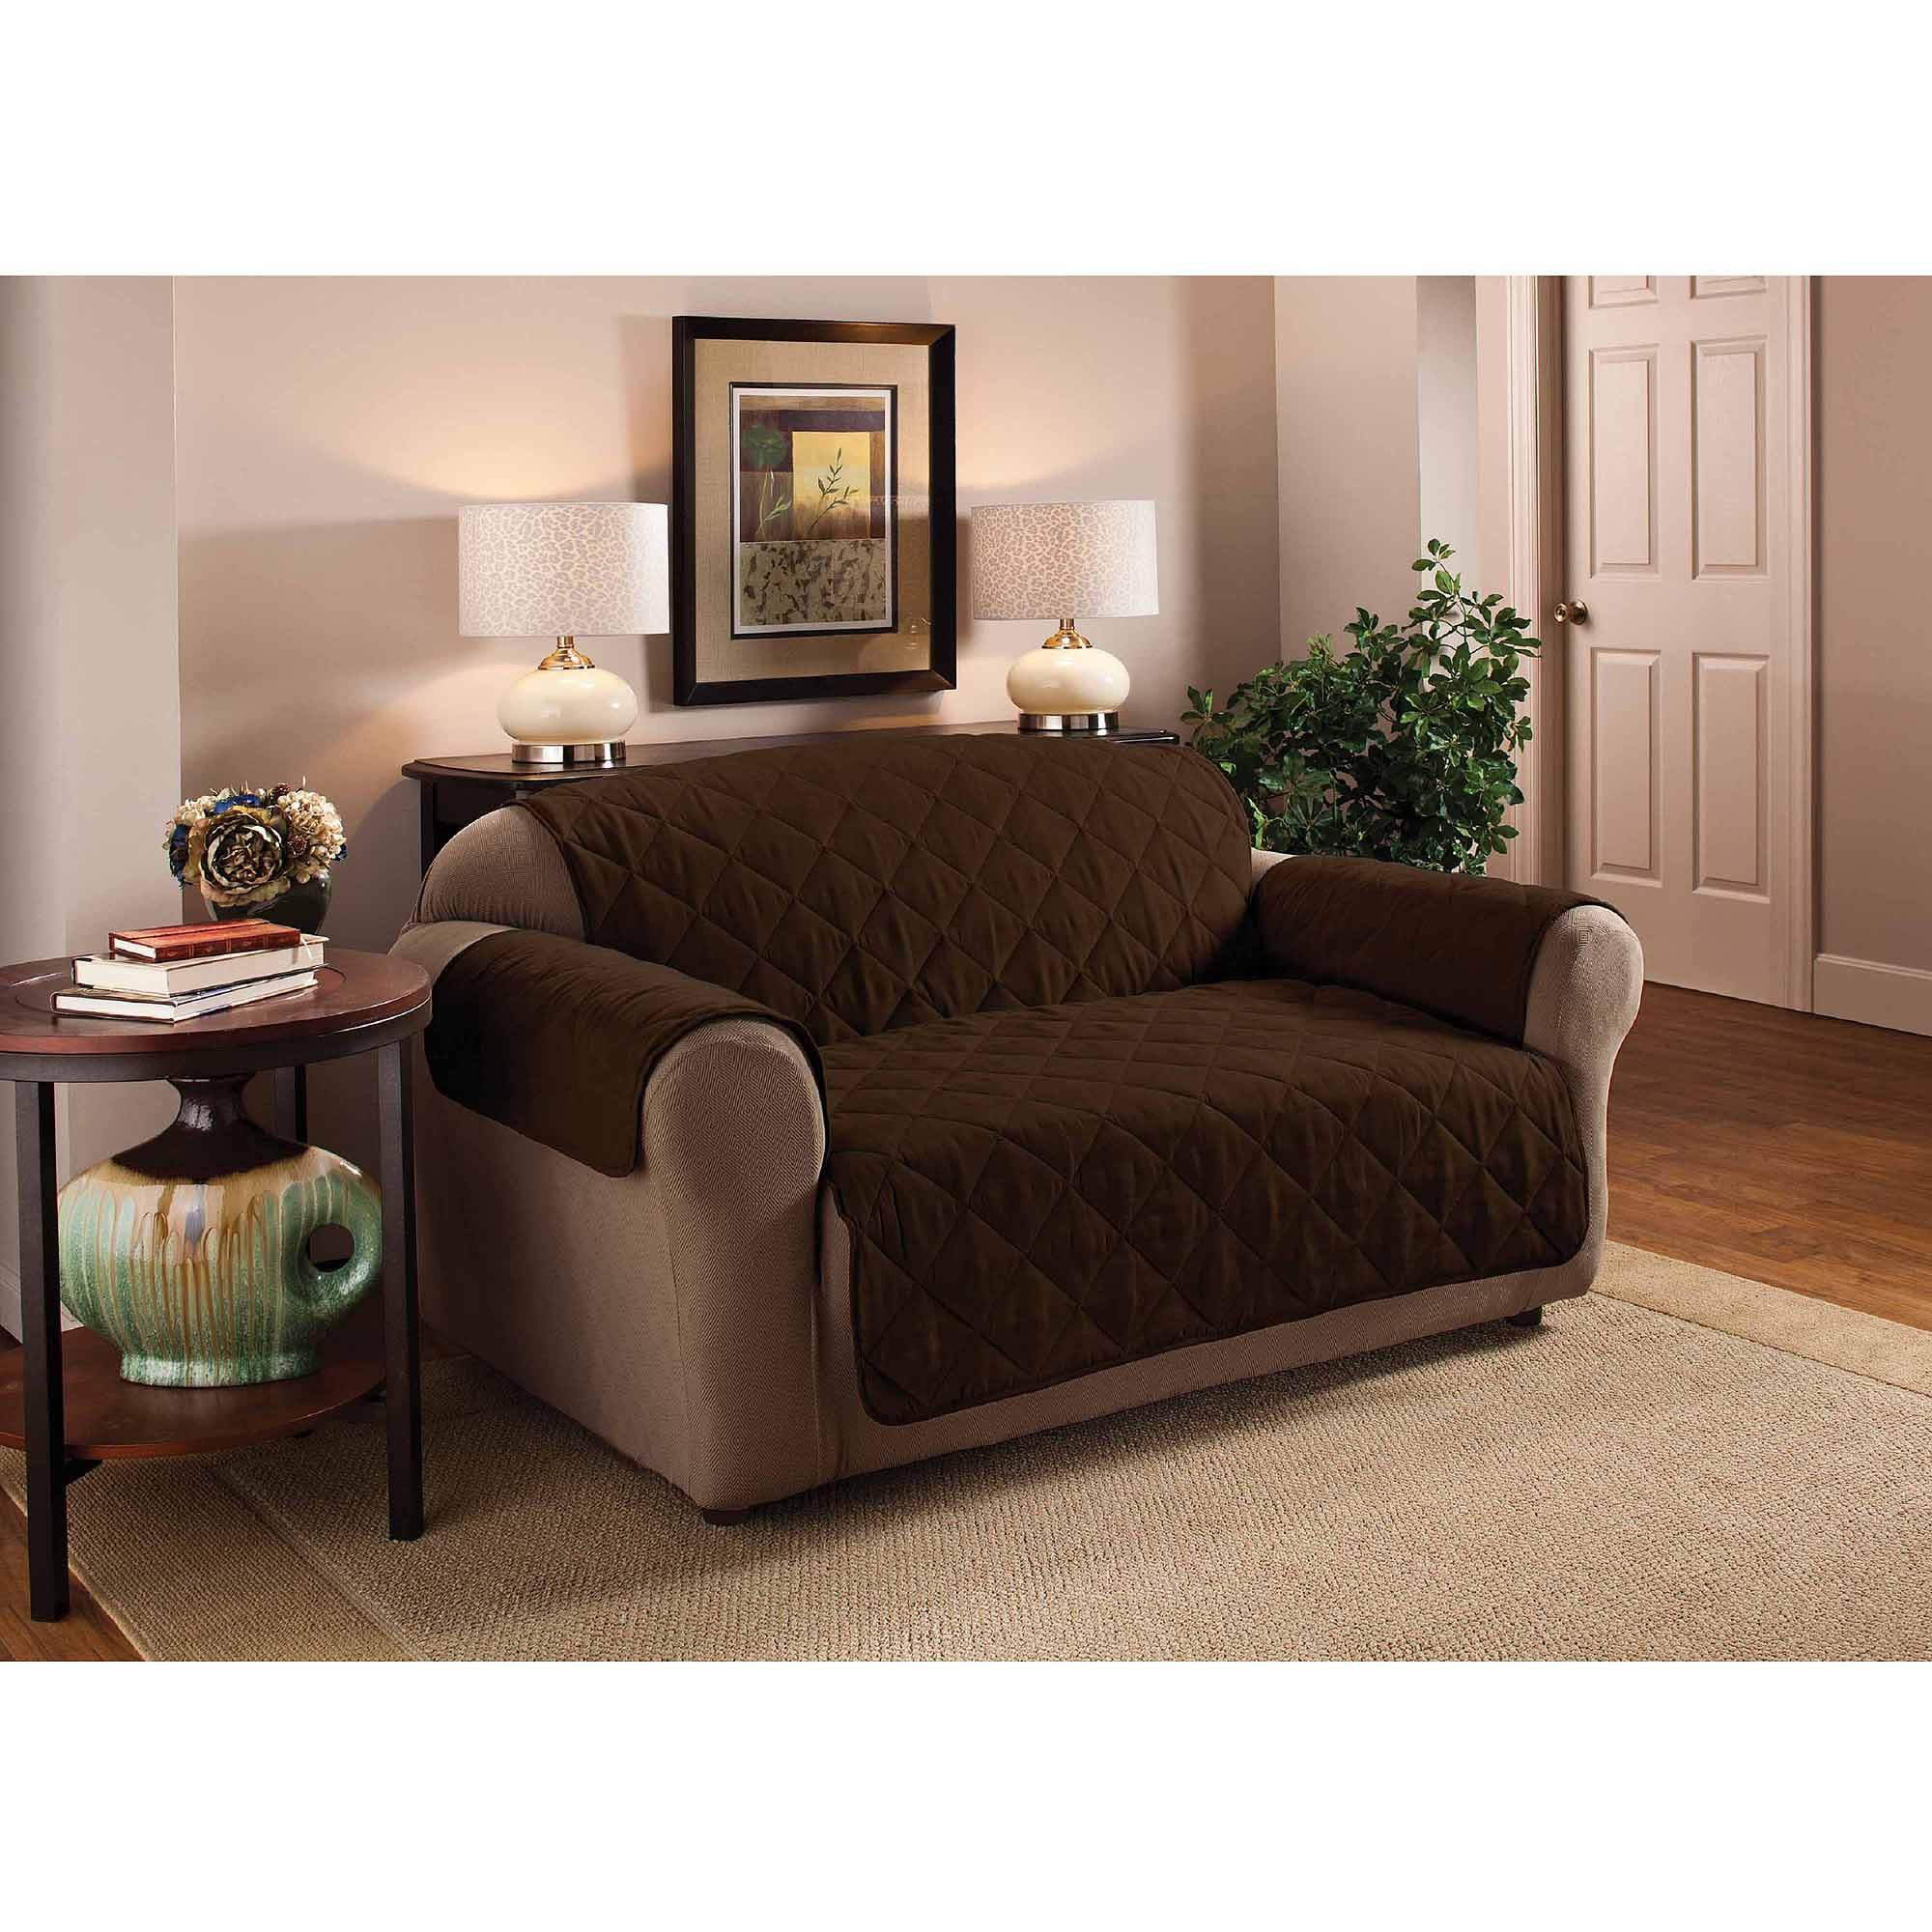 cover living burgundy fabric loveseat furniture sets sofa and couch shop julson room